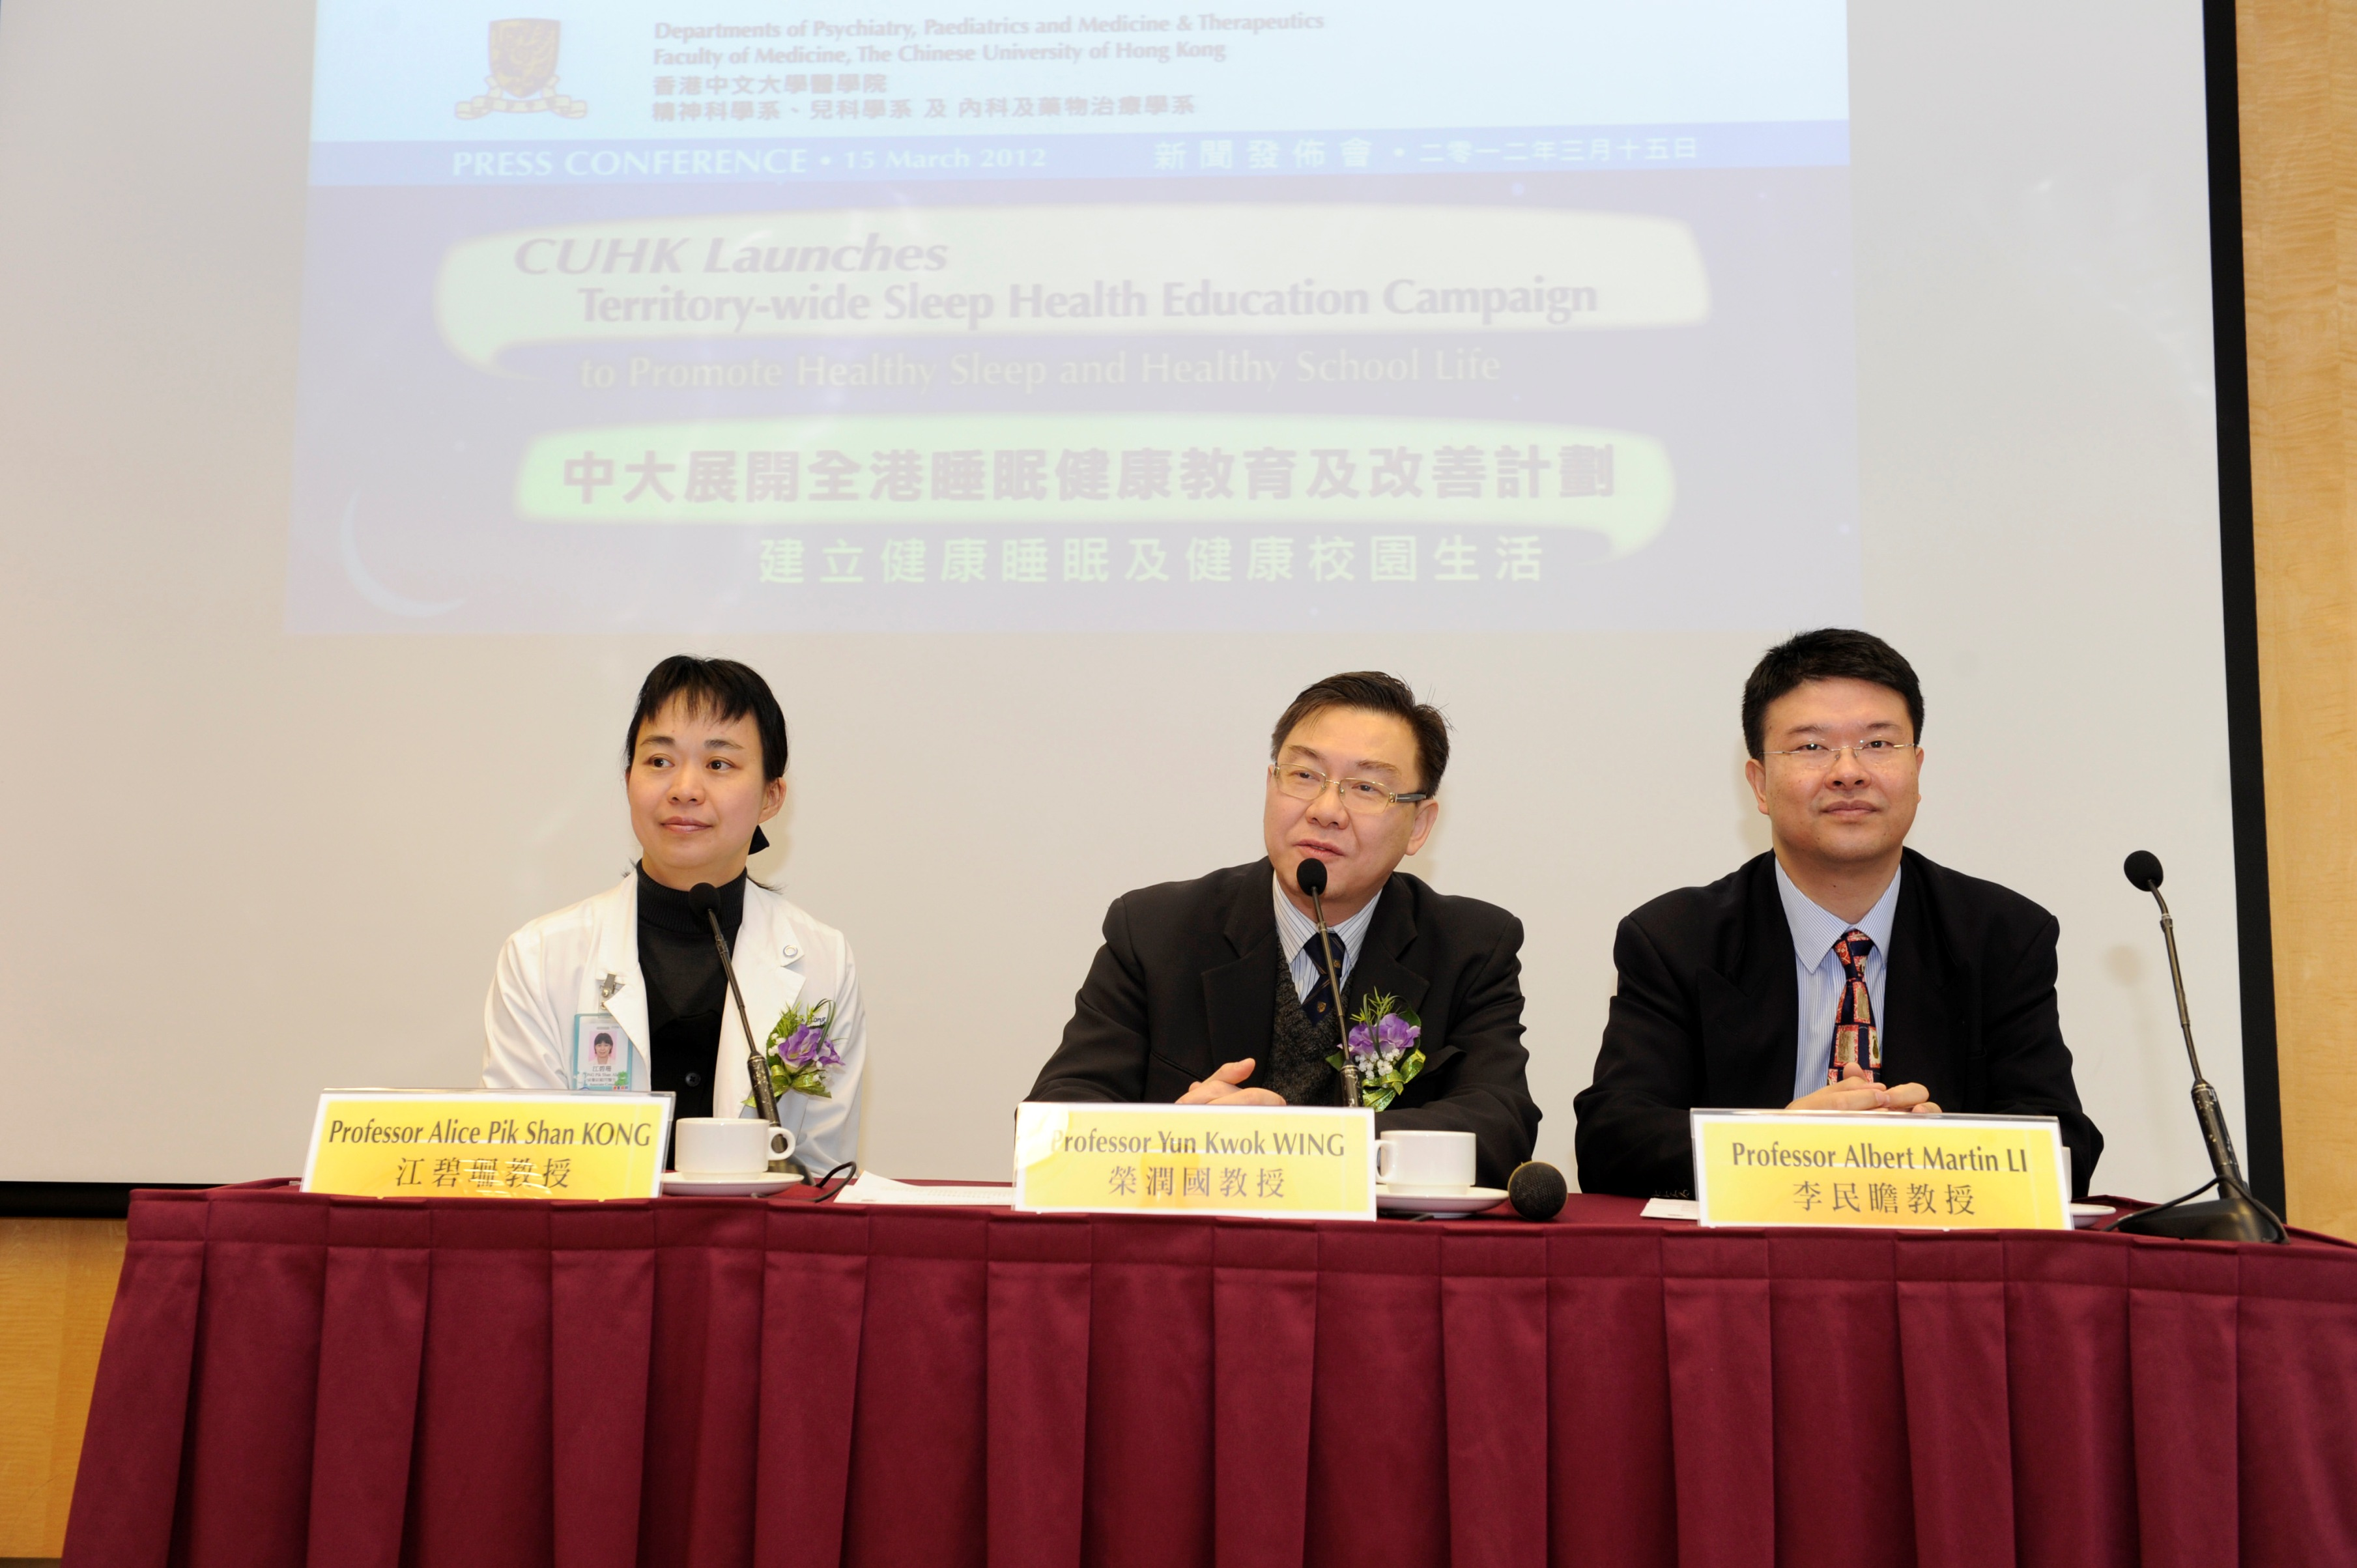 (From left) Prof. Alice Pik Shan KONG, Associate Professor, Division of Endocrinology and Diabetes, Department of Medicine and Therapeutics; Prof. Yun Kwok WING, Professor, Department of Psychiatry and Prof. Albert Martin LI, Professor, Department of Paediatrics, CUHK explained how the territory-wide Sleep Health Education and Intervention Campaign in local primary and secondary schools promotes healthy sleeping habits among students